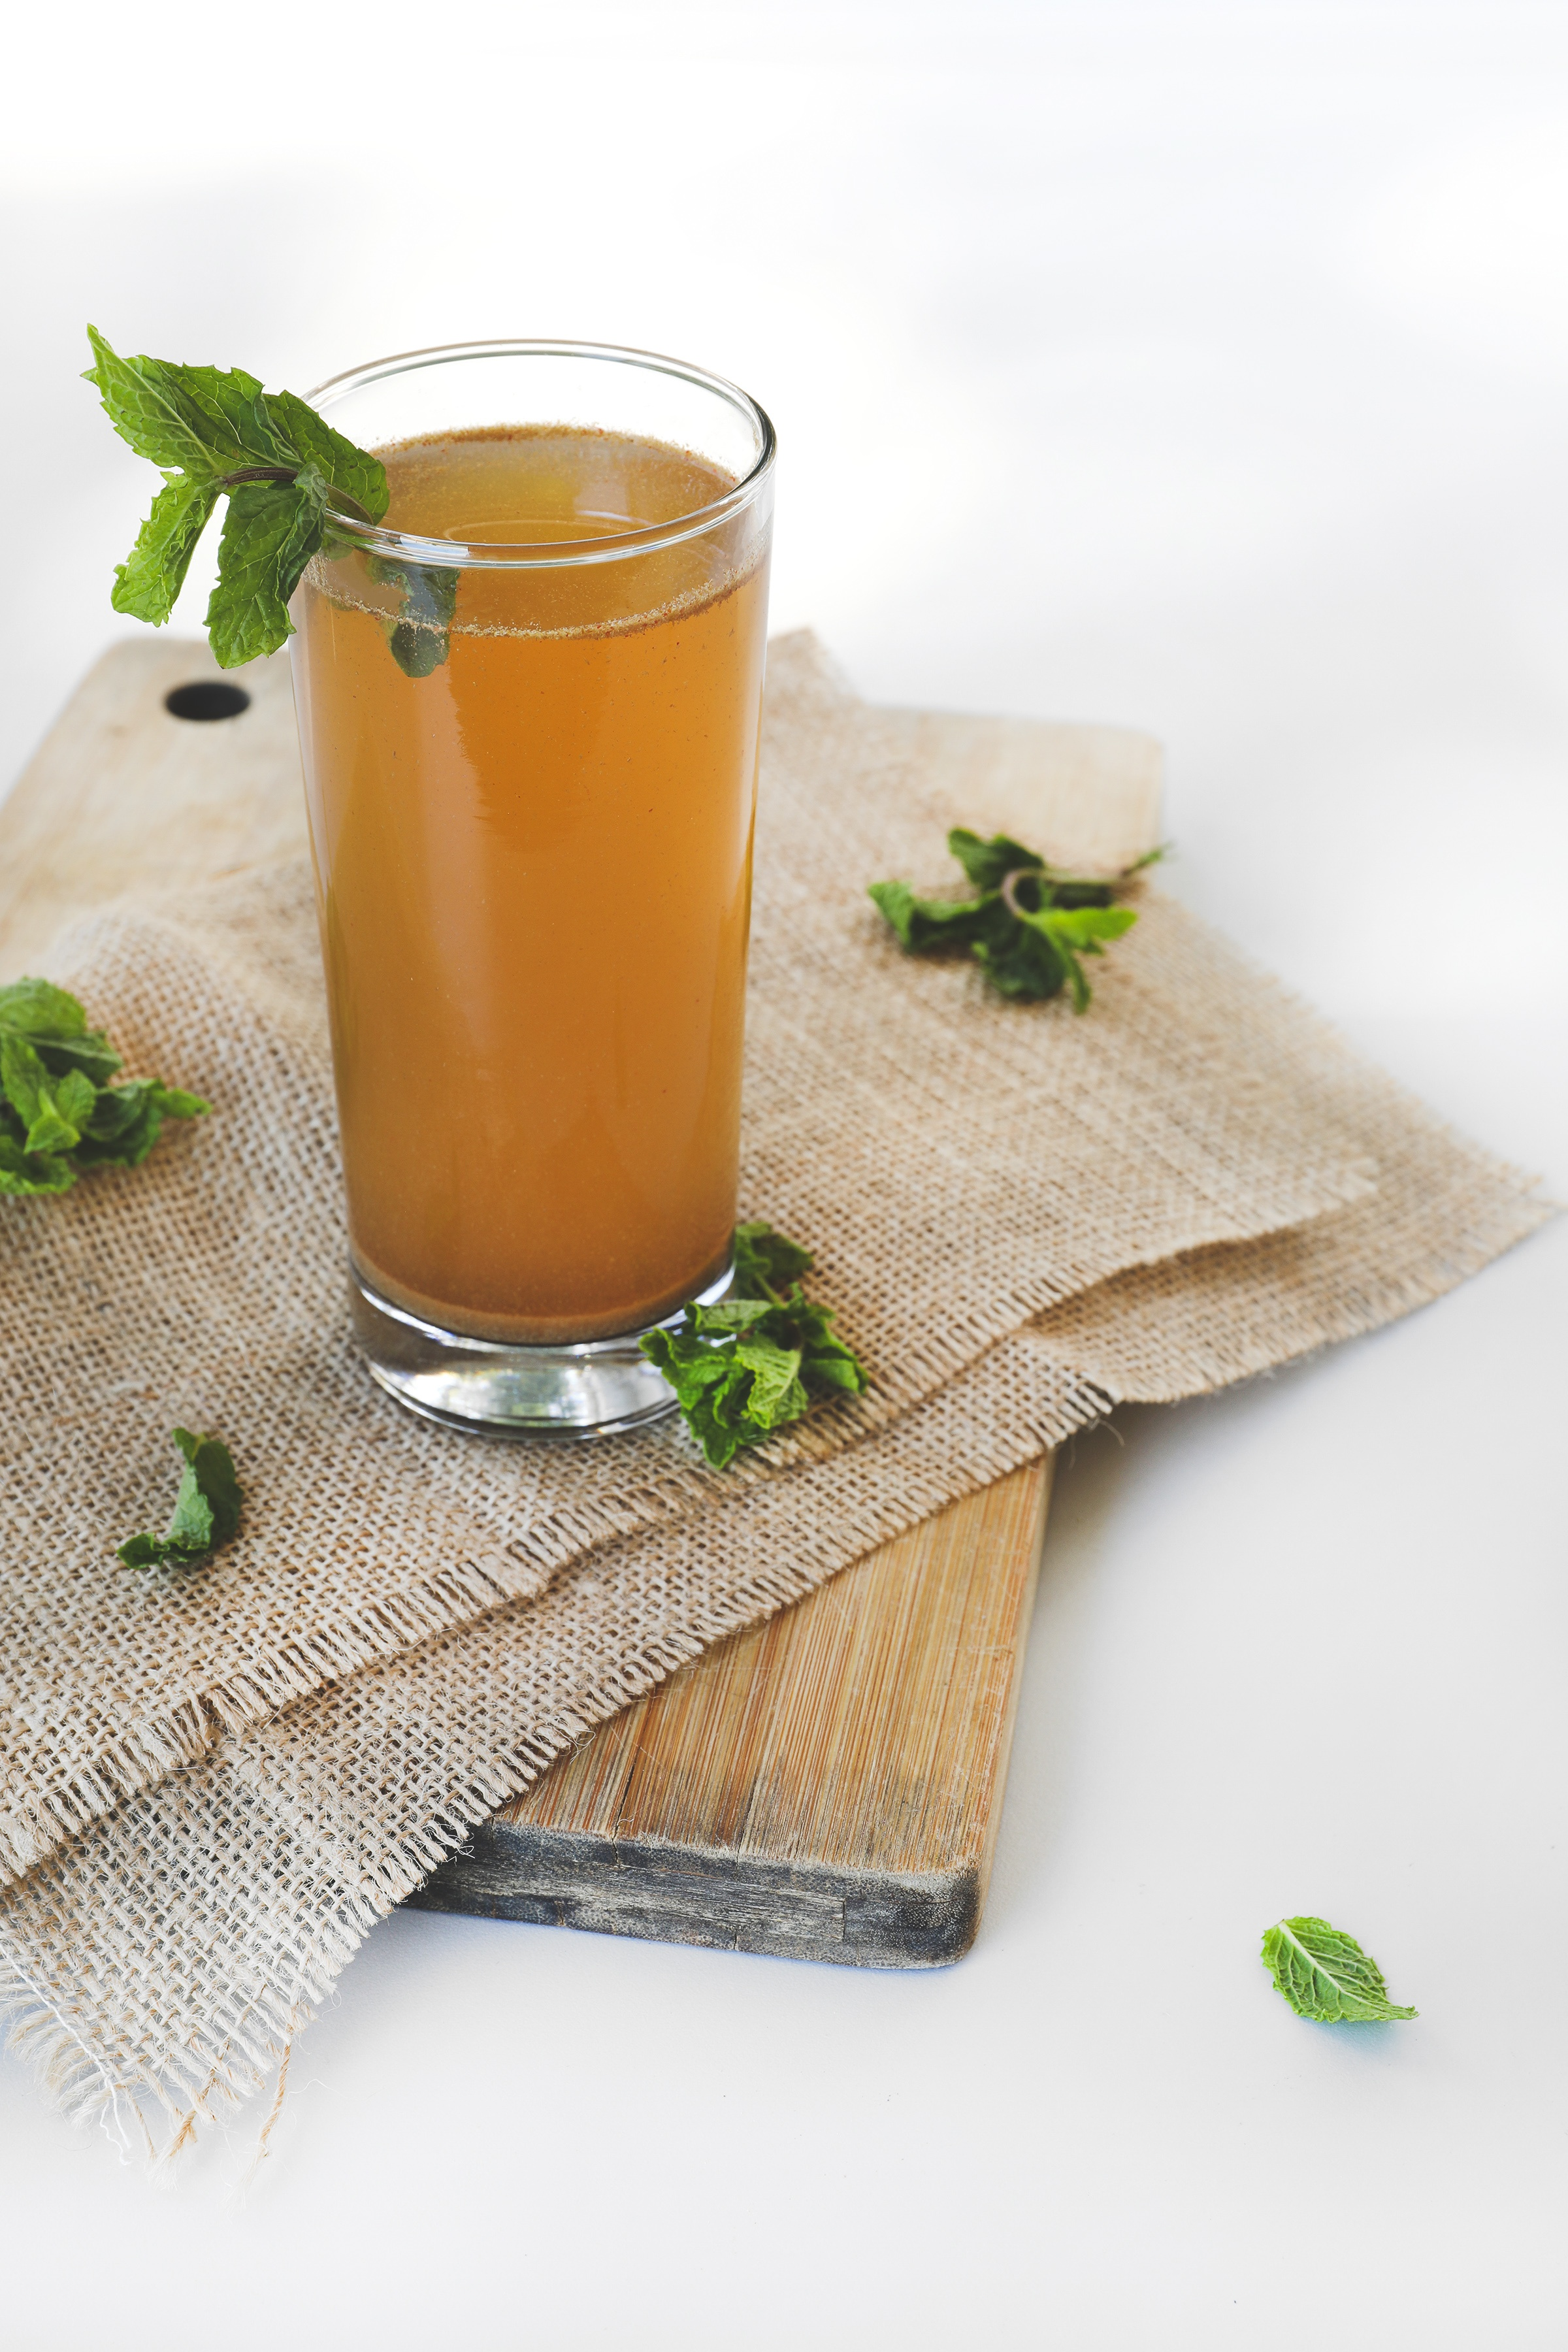 Tall glass with amla drink sitting on burlap napkins on cutting board